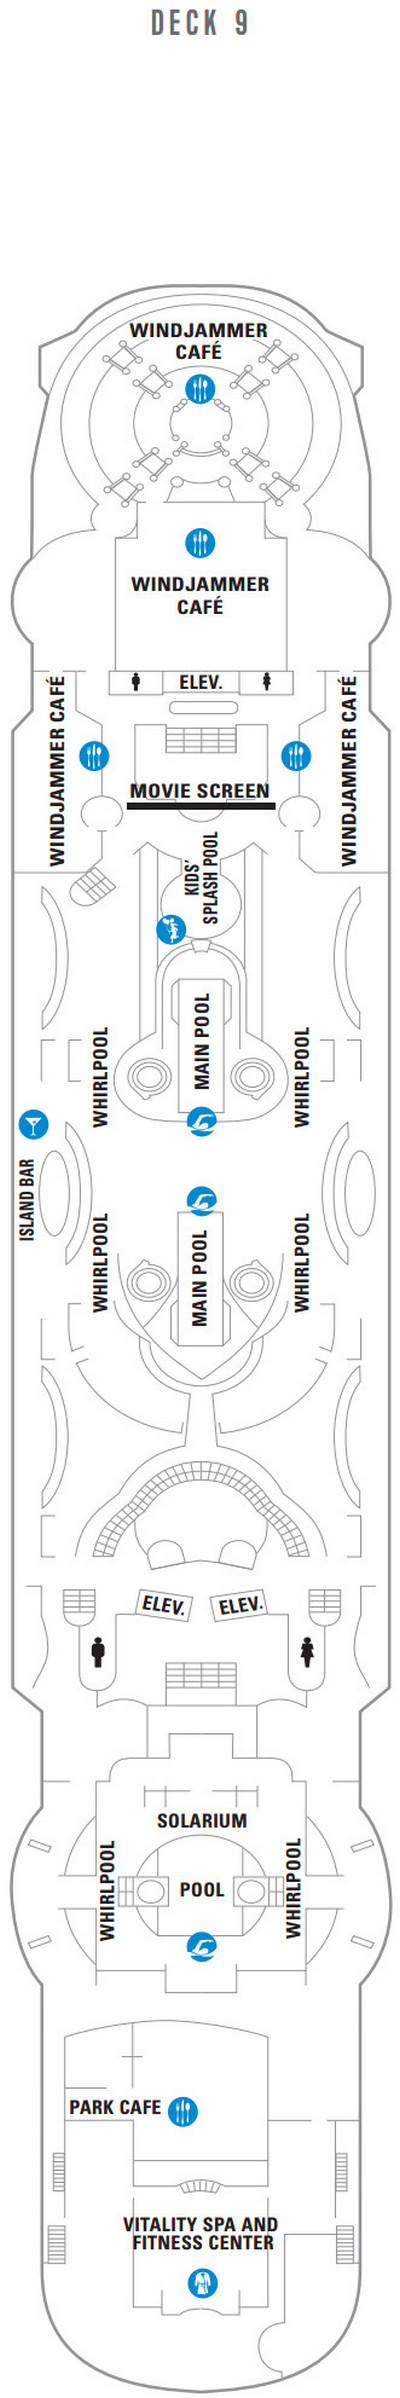 Enchantment Of The Seas Deck 9 layout